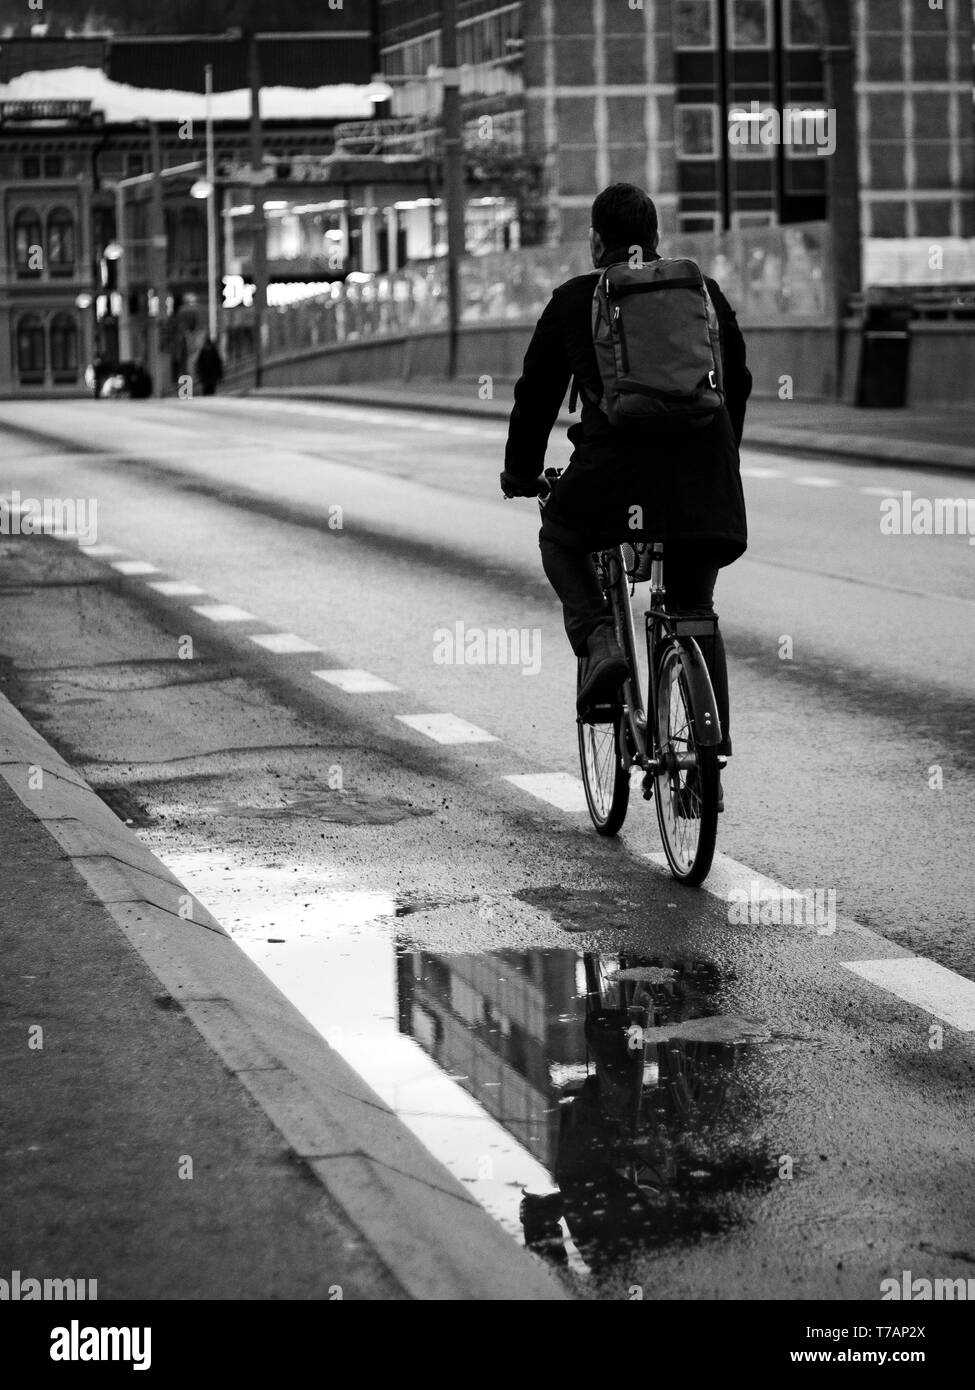 Man riding his bike in the city. Water pit reflecting buildings - Stock Image